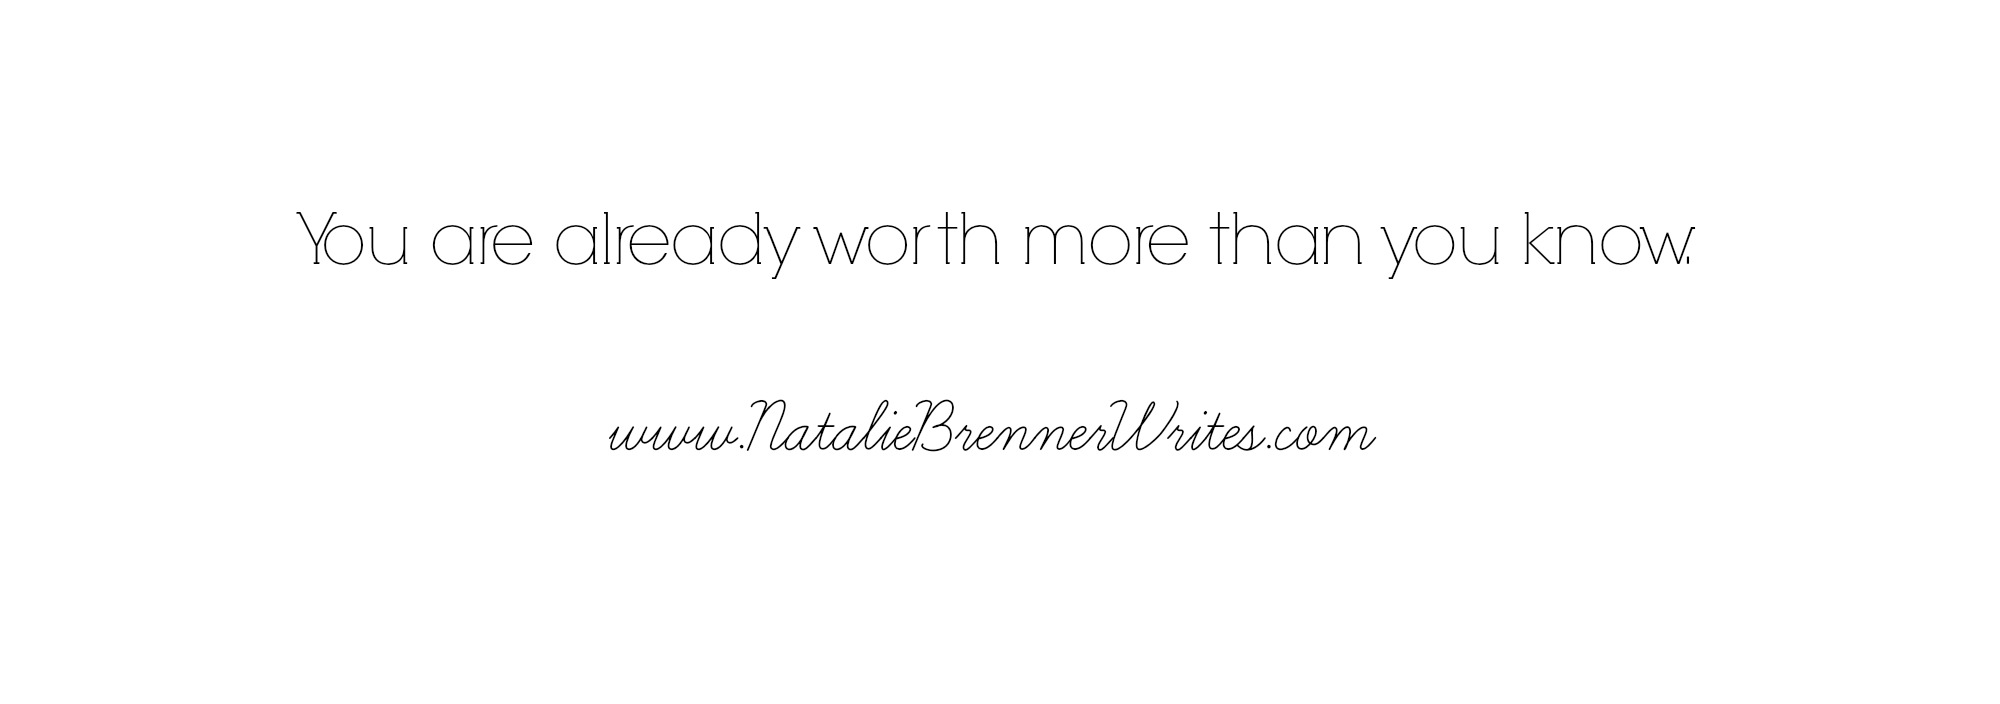 you are already worth more